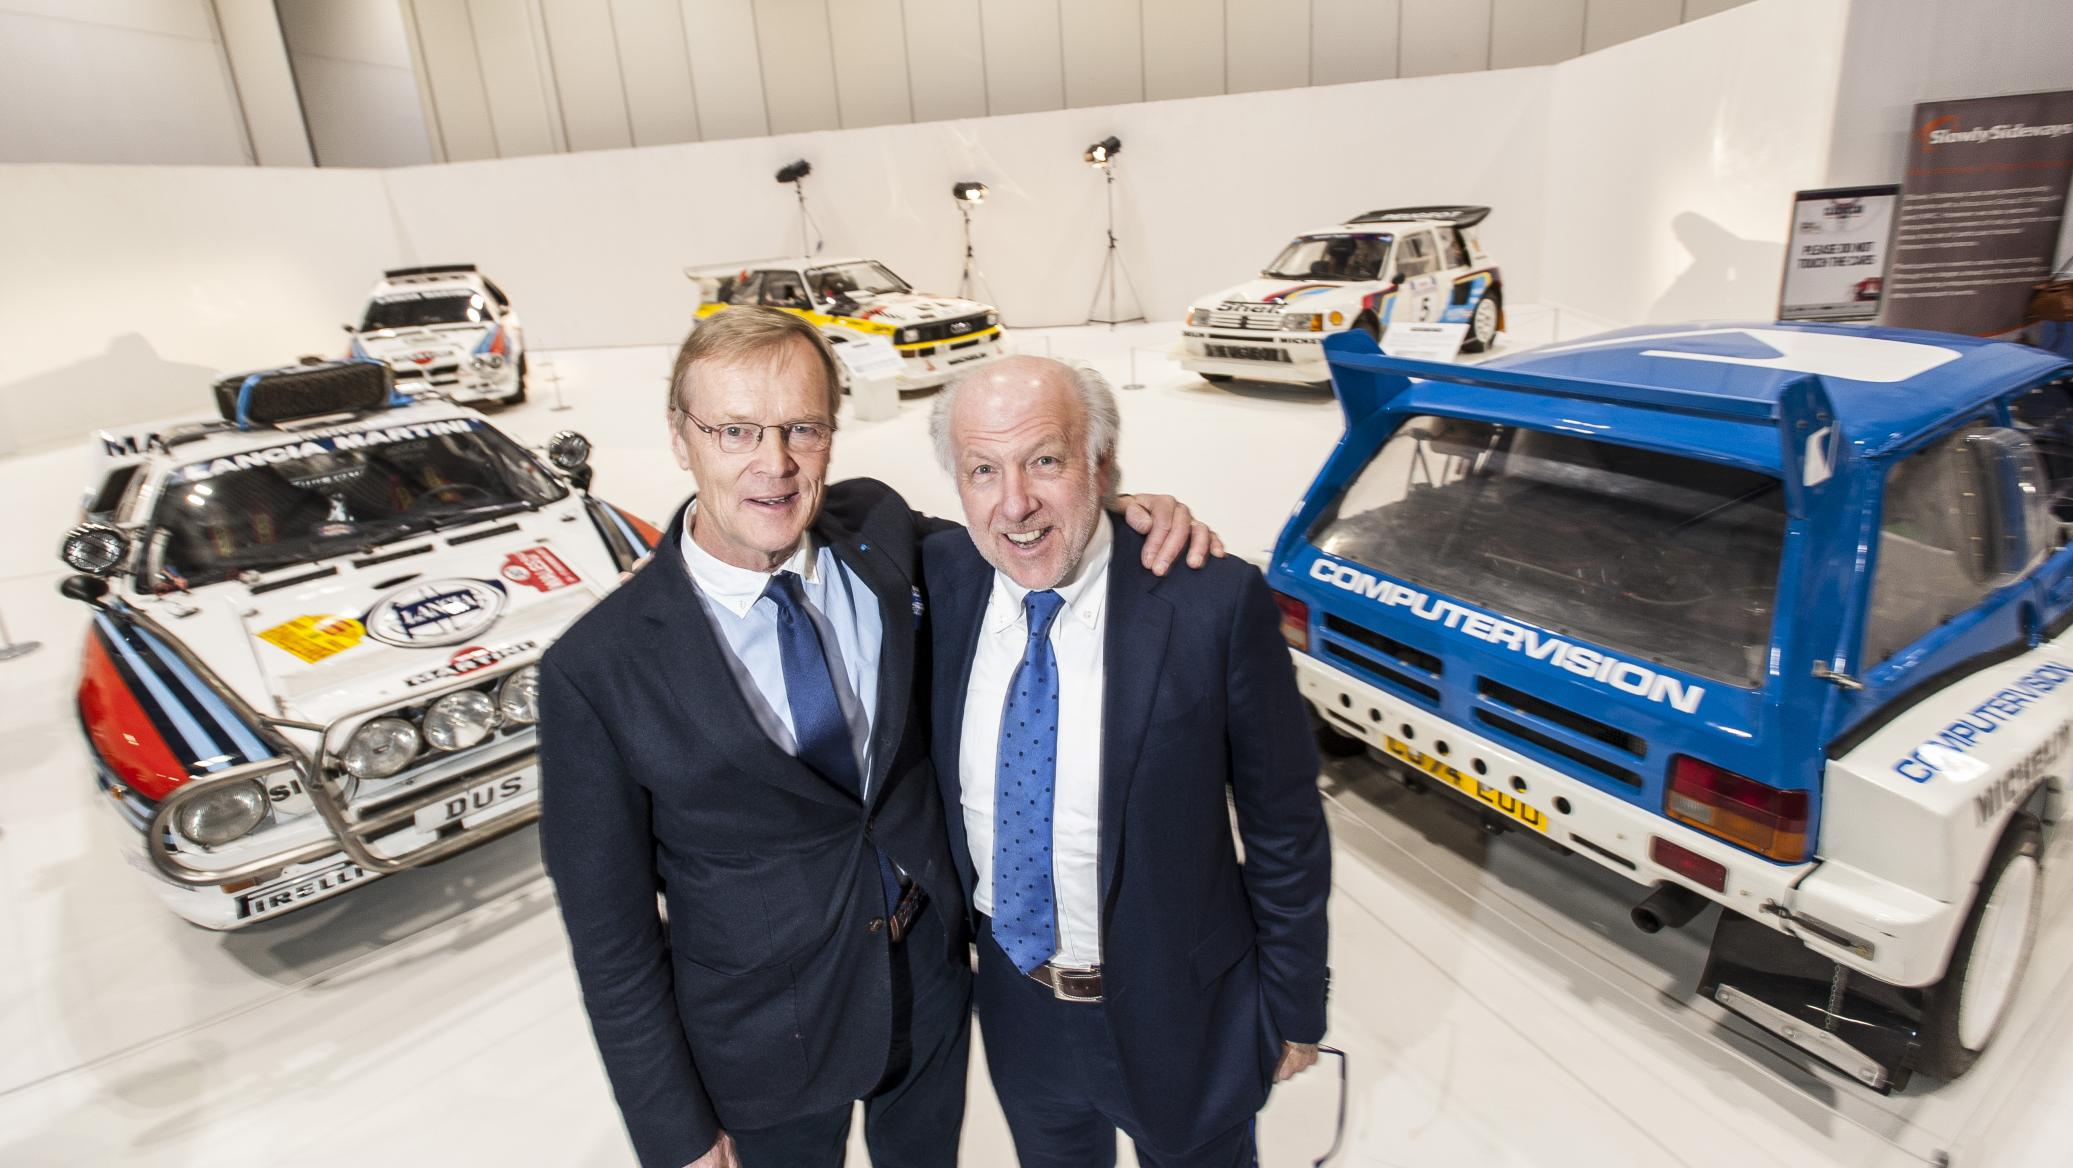 ari vatanen and david richards at the group b rally displa my car heaven. Black Bedroom Furniture Sets. Home Design Ideas